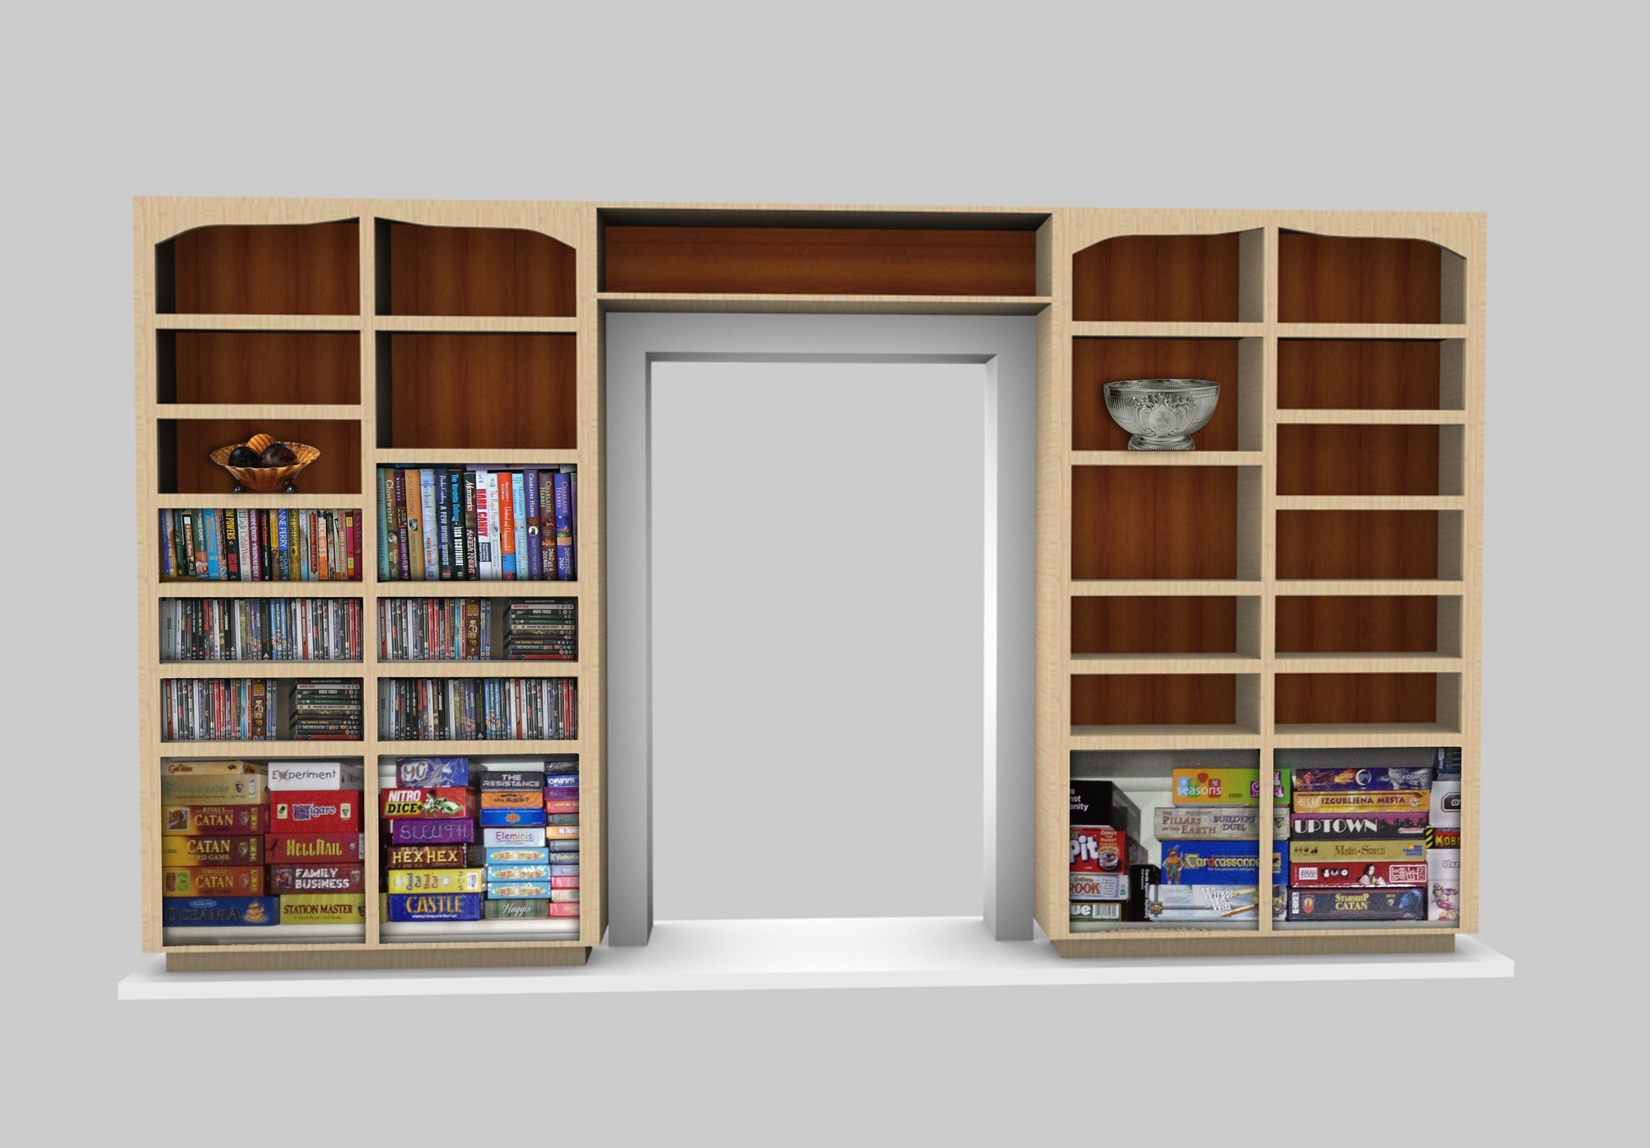 Cabinet Design Software Sketchlist 3d Rendering Very Realistic In Book Cabinet Design (View 4 of 15)